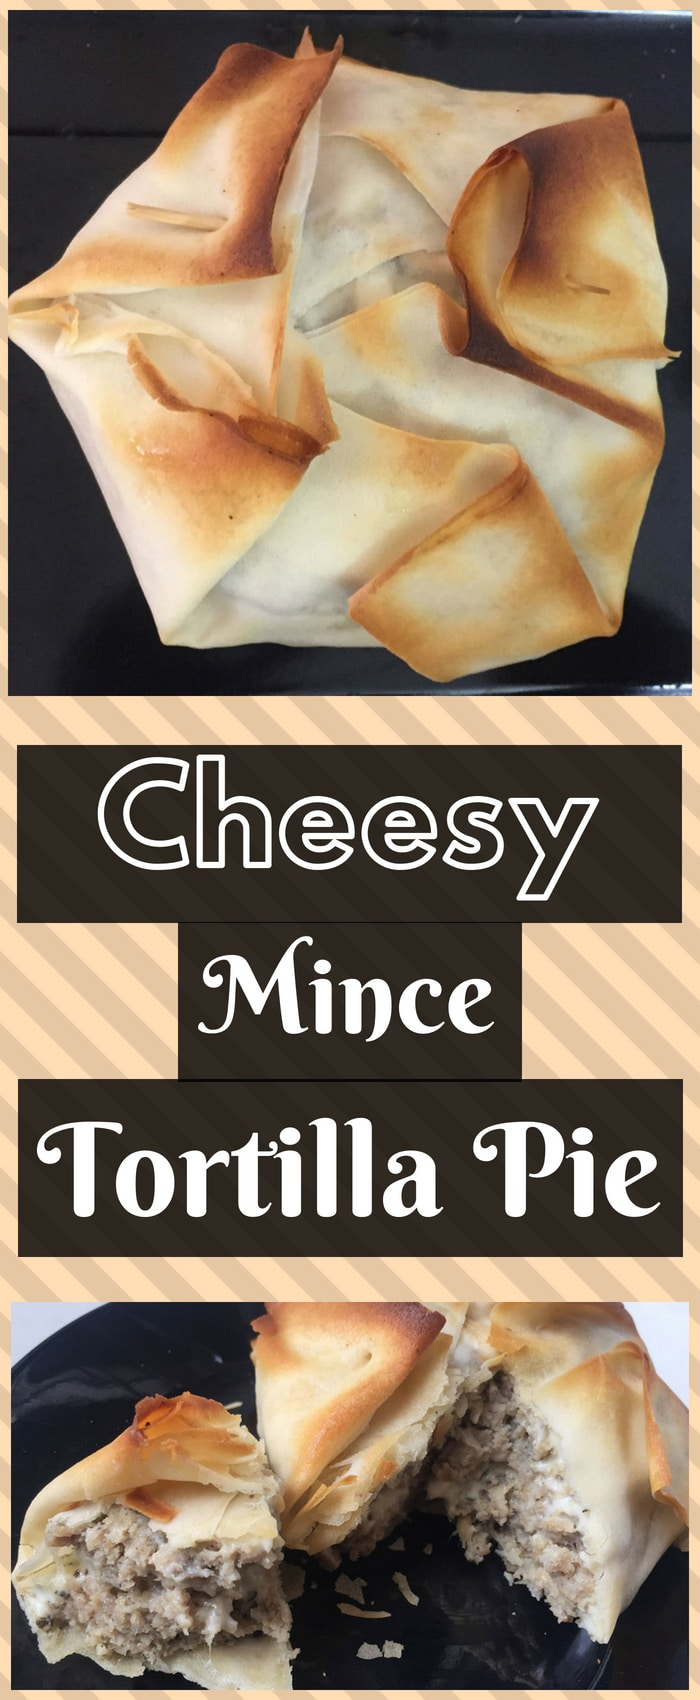 Cheesy Mince Tortilla Pie